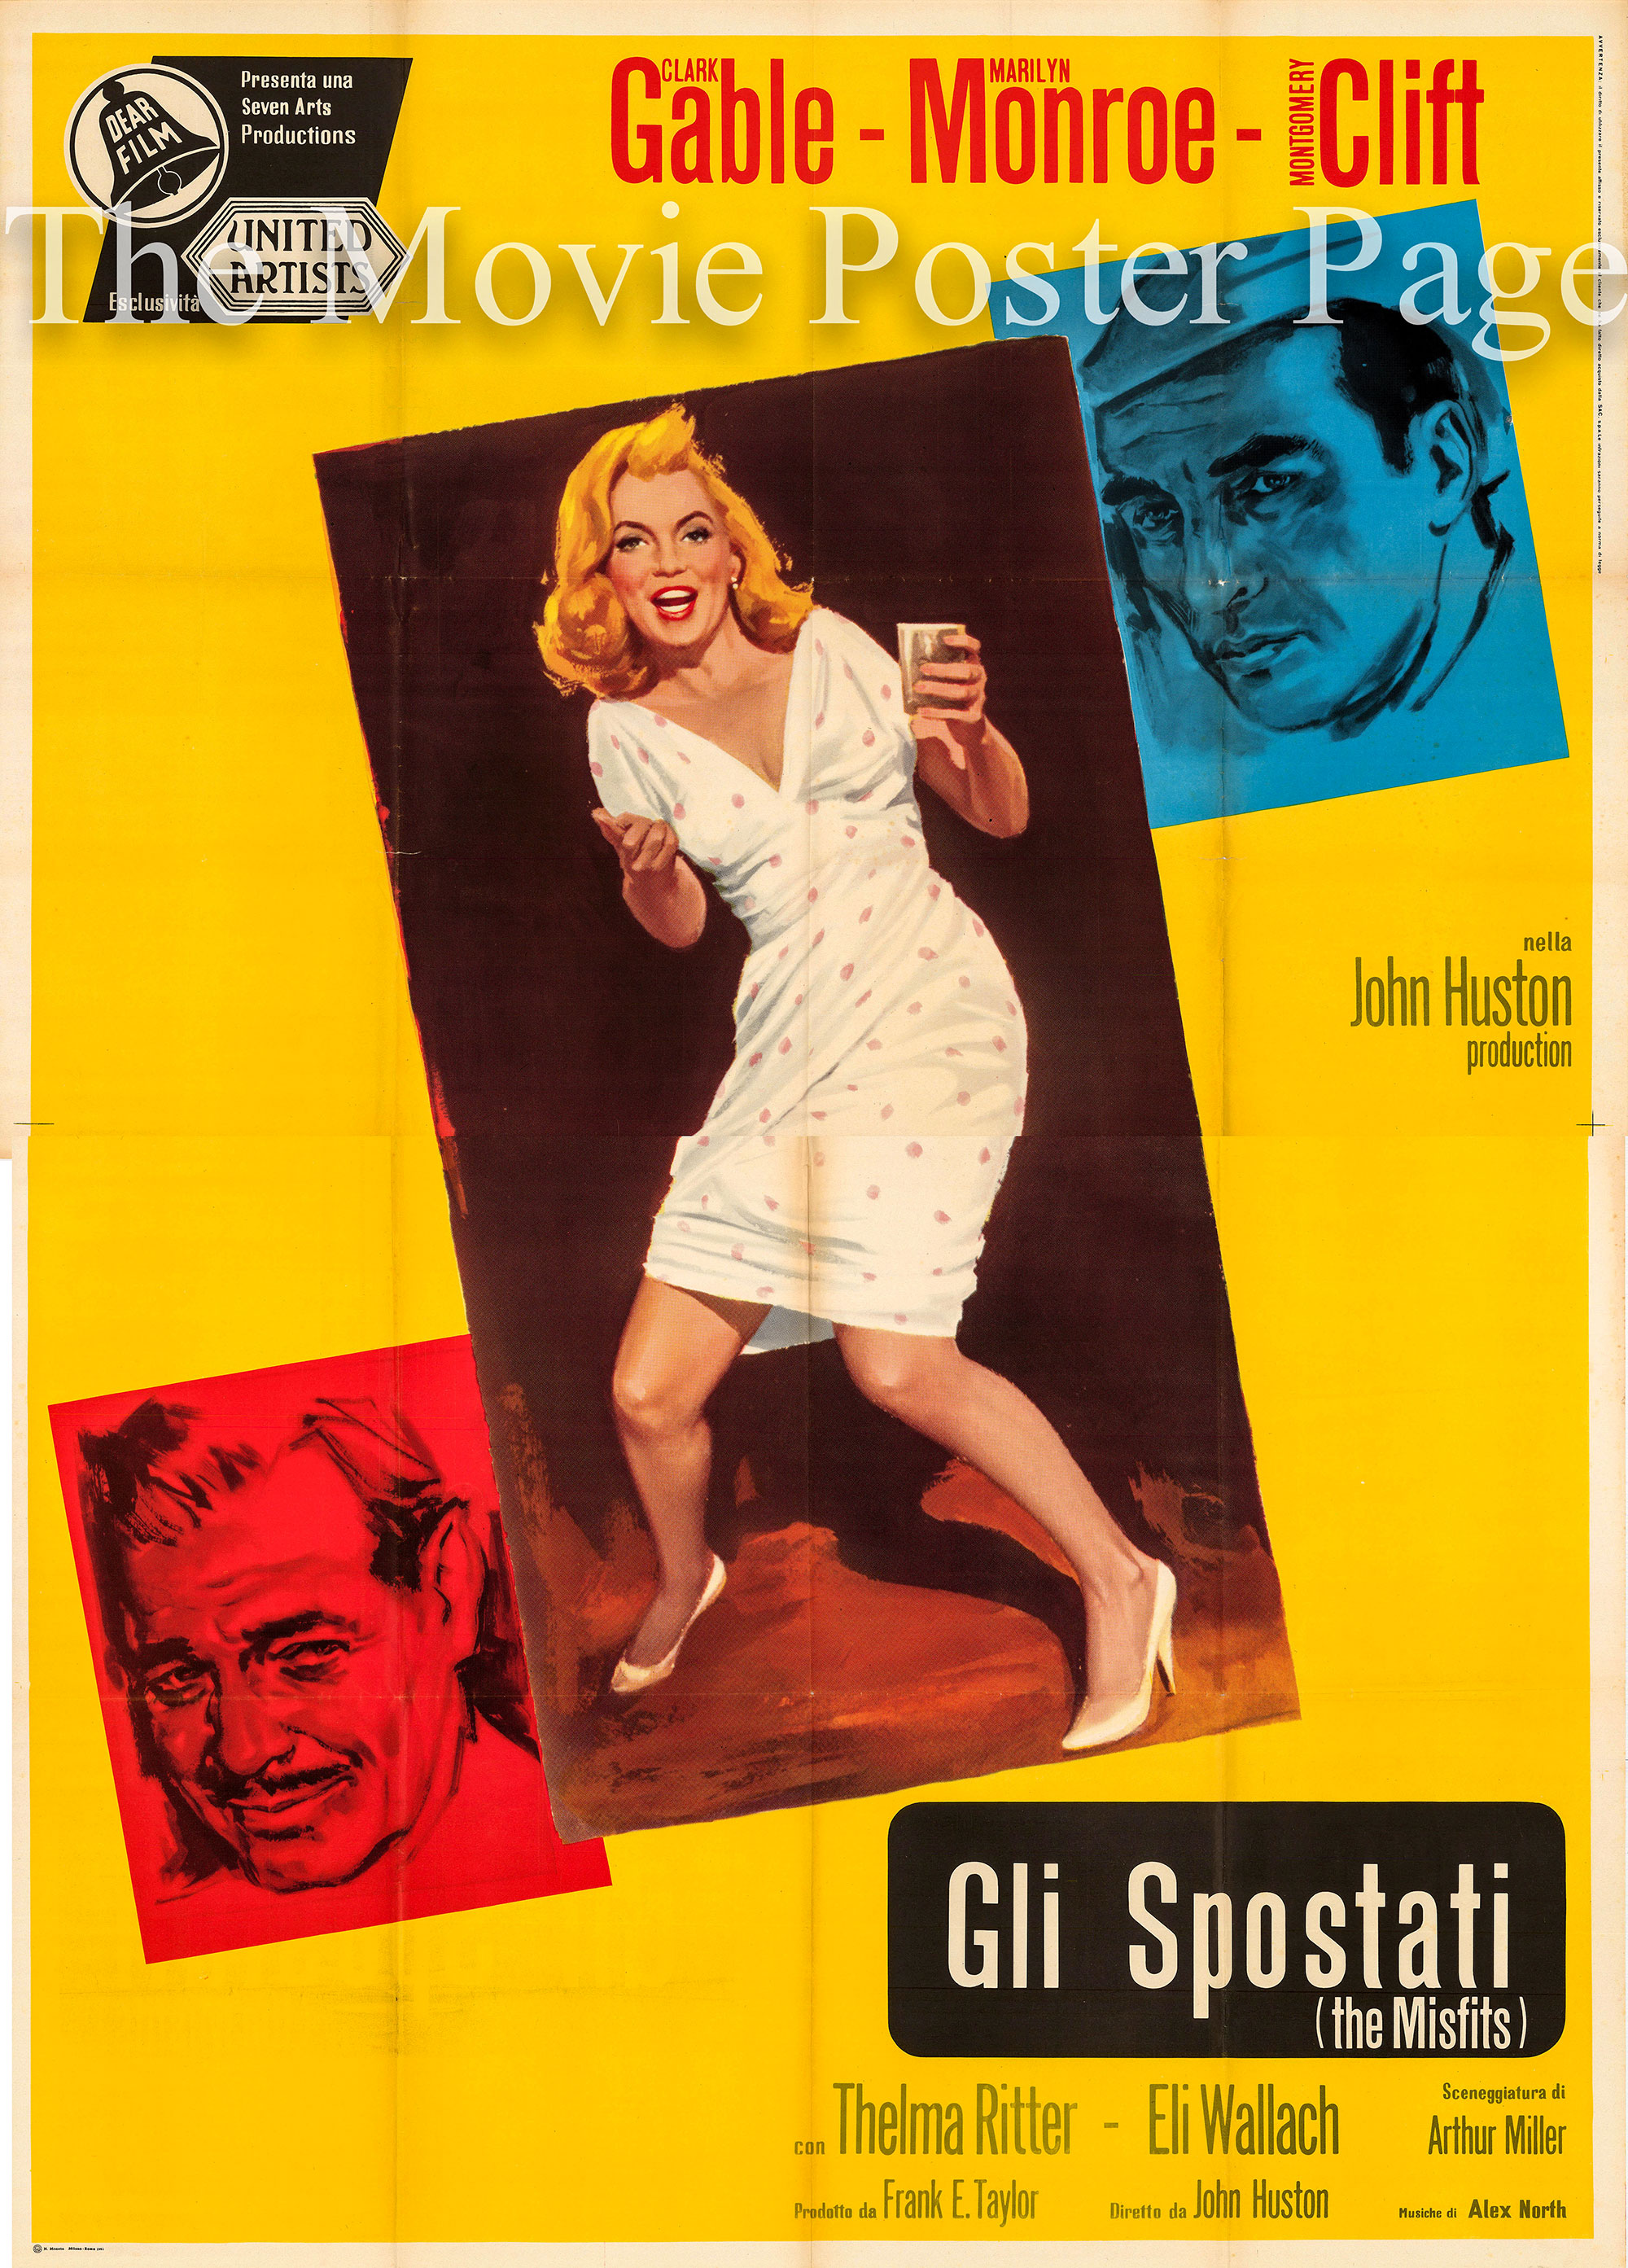 Pictured is an Italian four-sheet promotional poster for the 1961 John Huston film The Misfits starring Marilyn Monroe as Roslyn Taber.